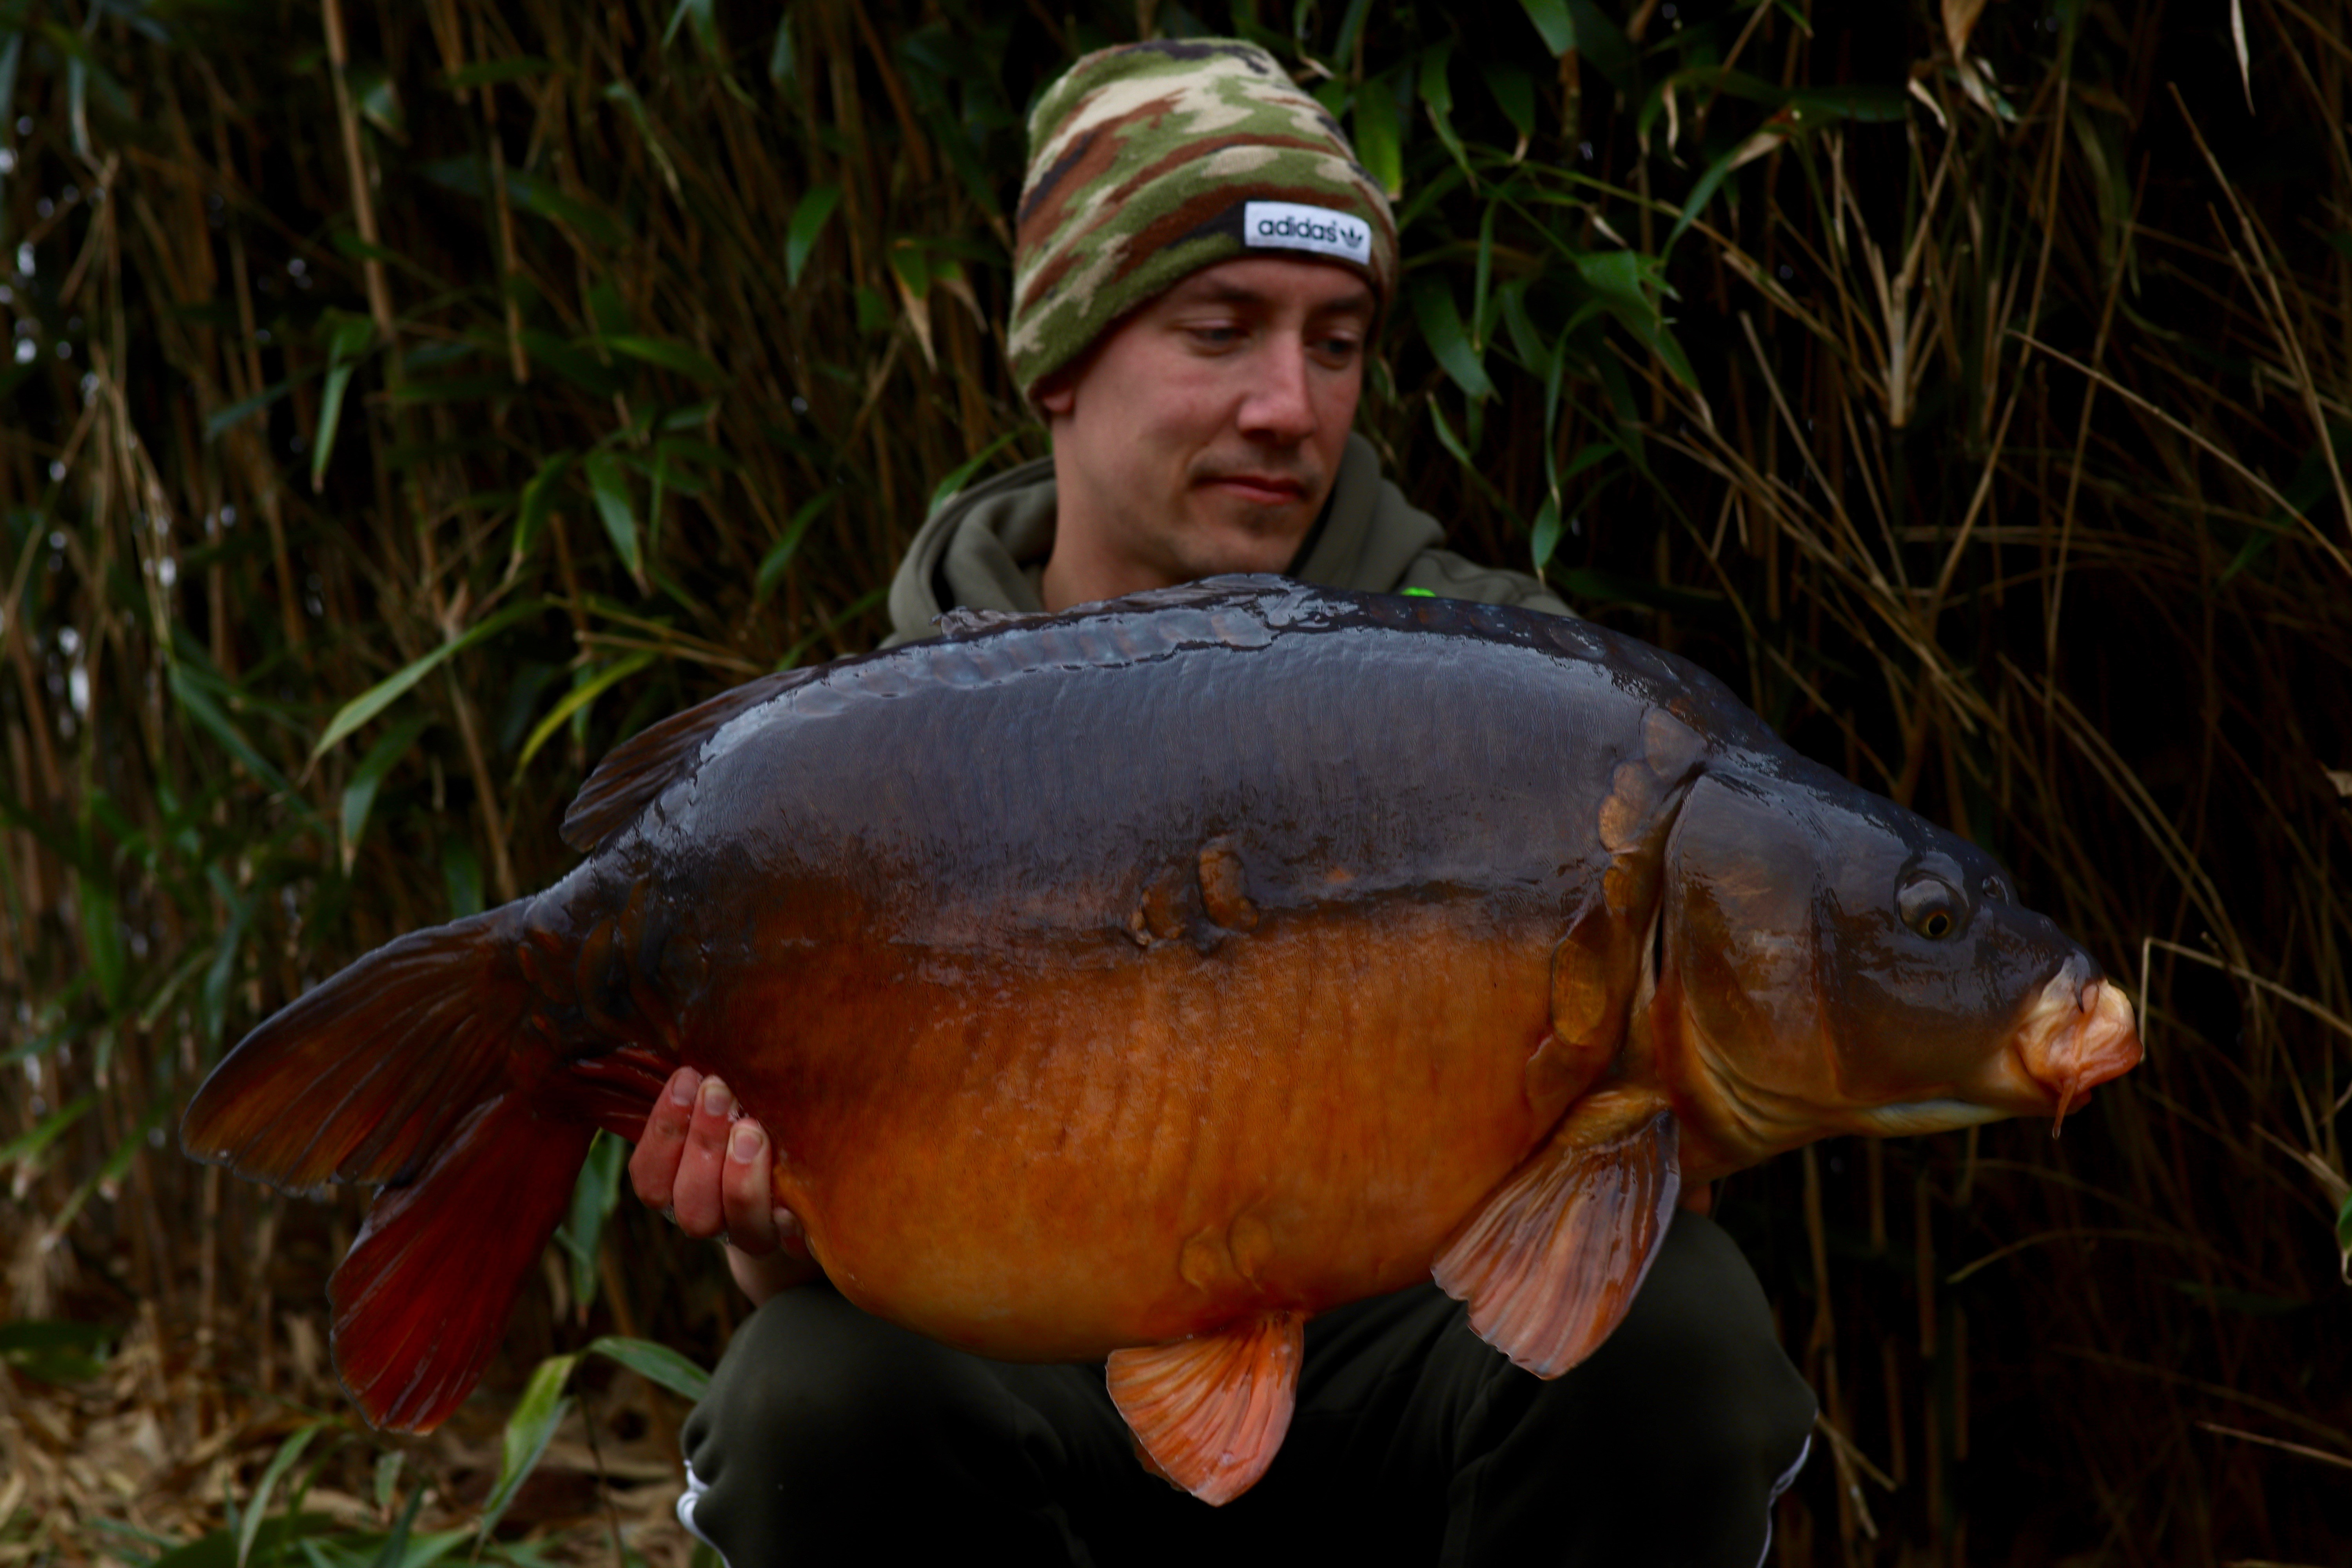 Tom Williams  holding a 27lb 08oz from RH Fisheries